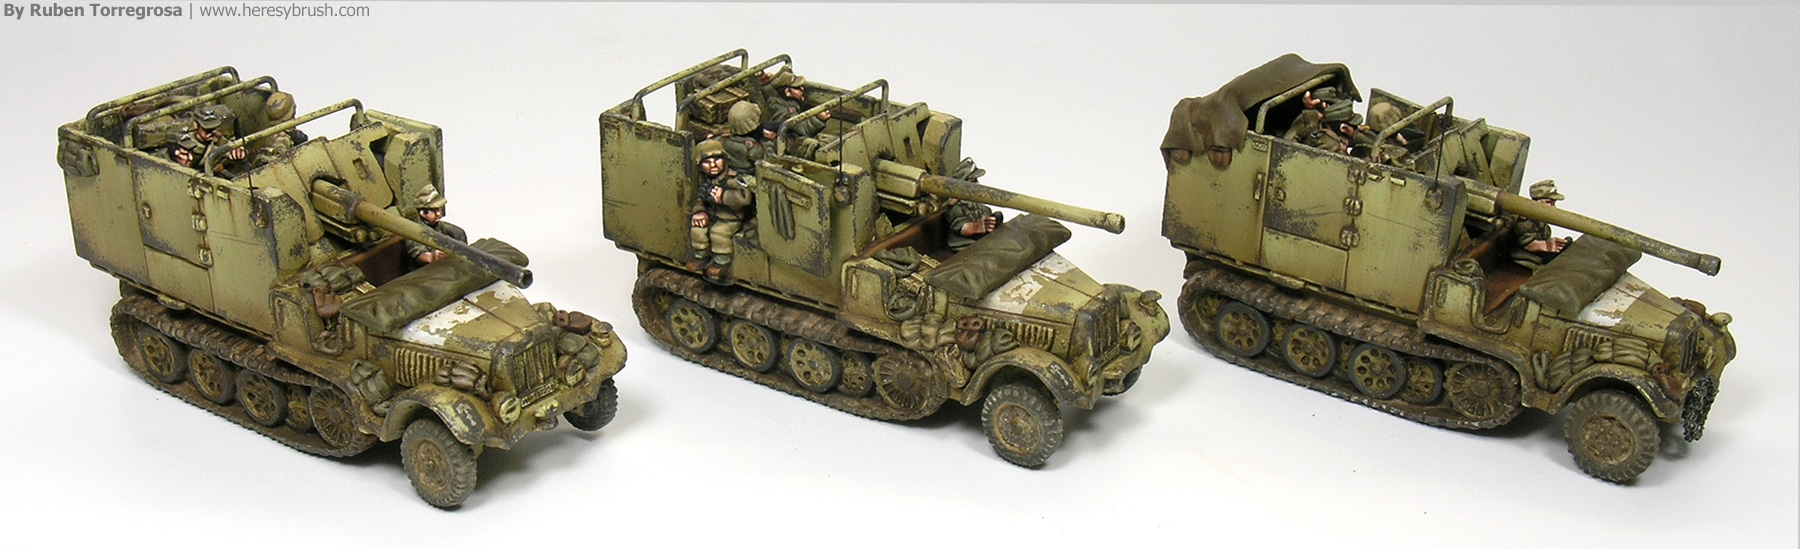 Afrika Korps flames of war